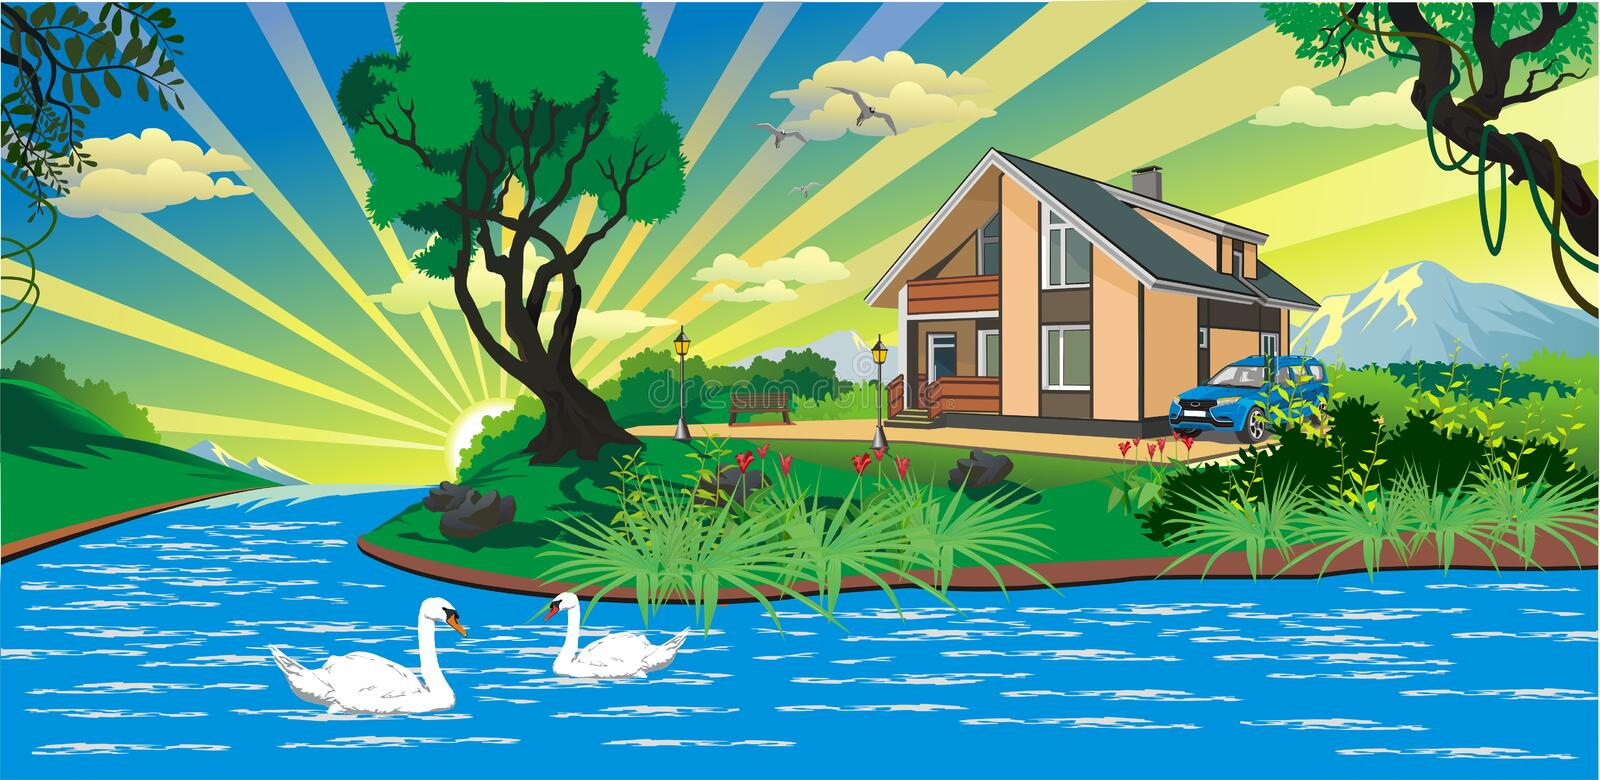 Landscape - the house by the river with swans vector illustration